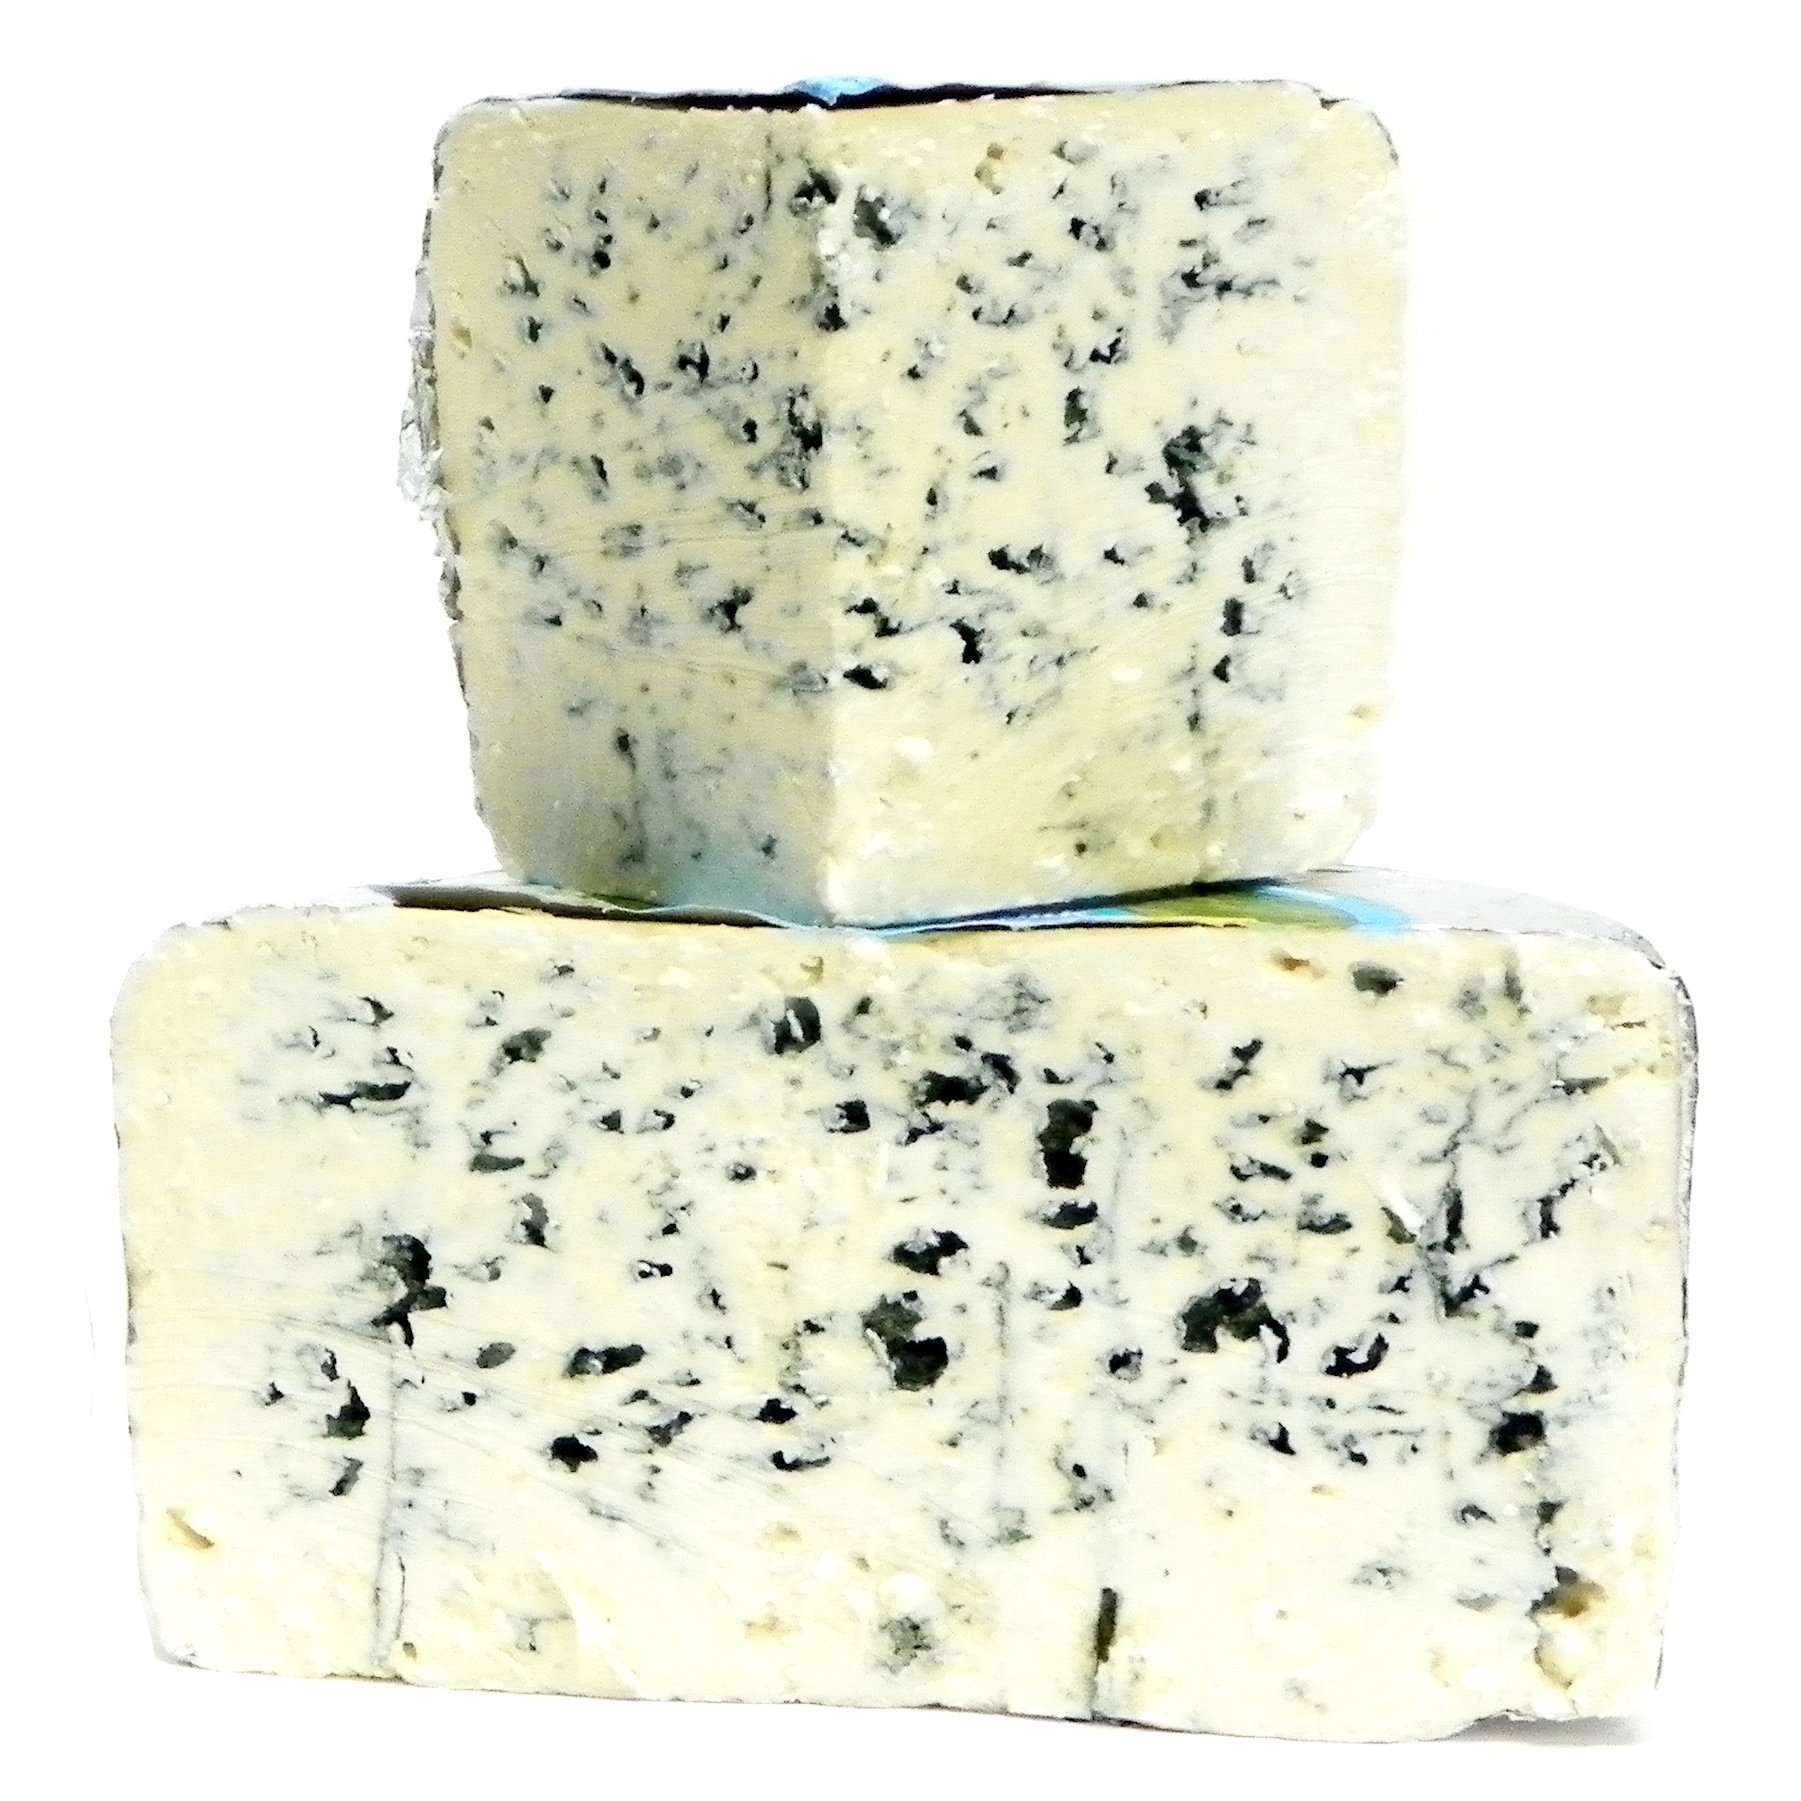 Roth Cheese Buttermilk Bleu Cheese Aged 6 Months 1 LB